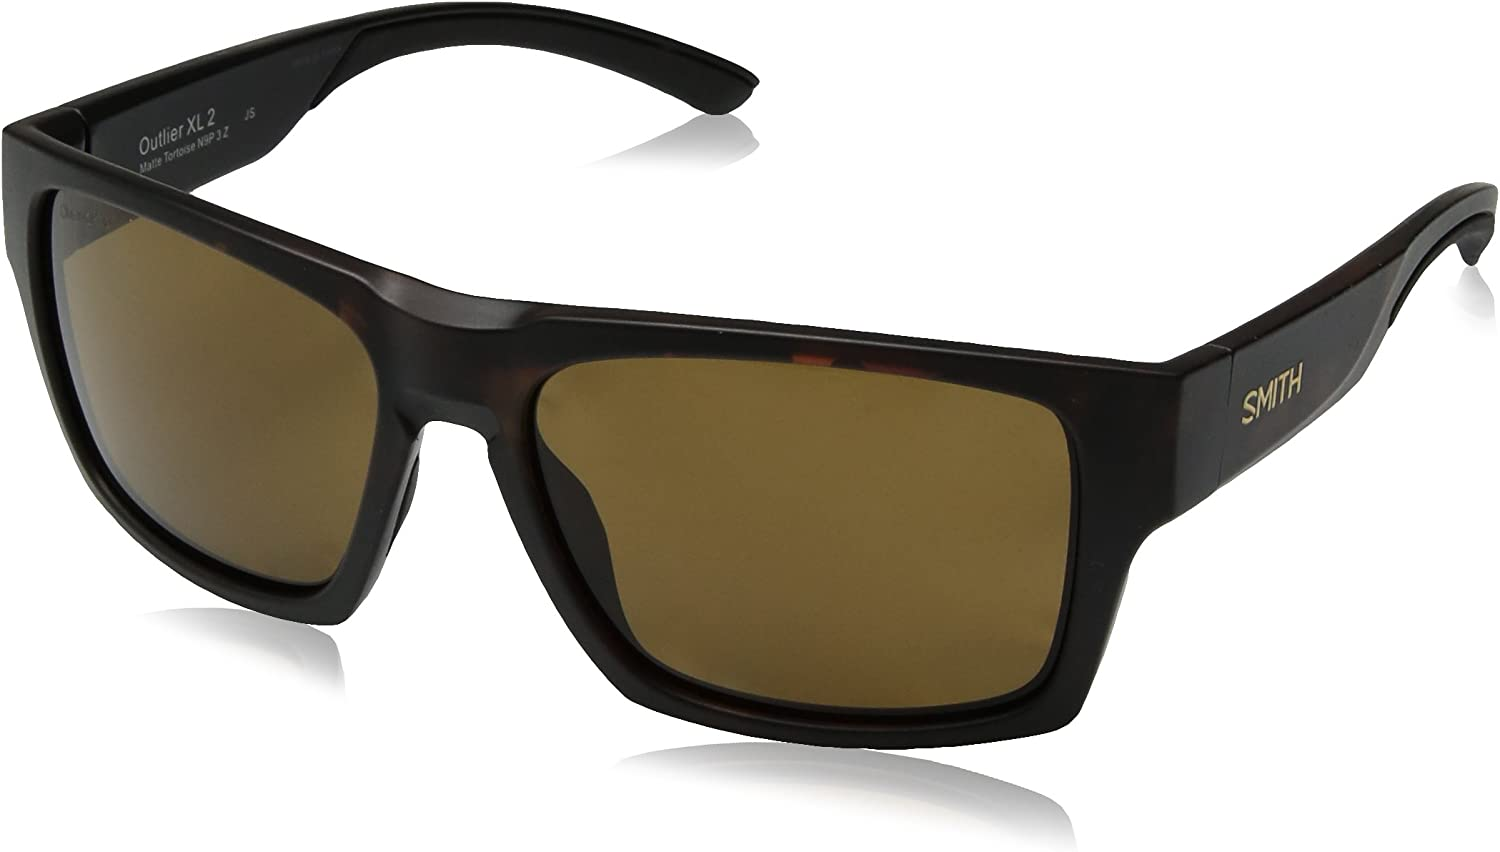 Smith Outlier 2 XL ChromaPop Polarized Sunglasses, Matte Tortoise